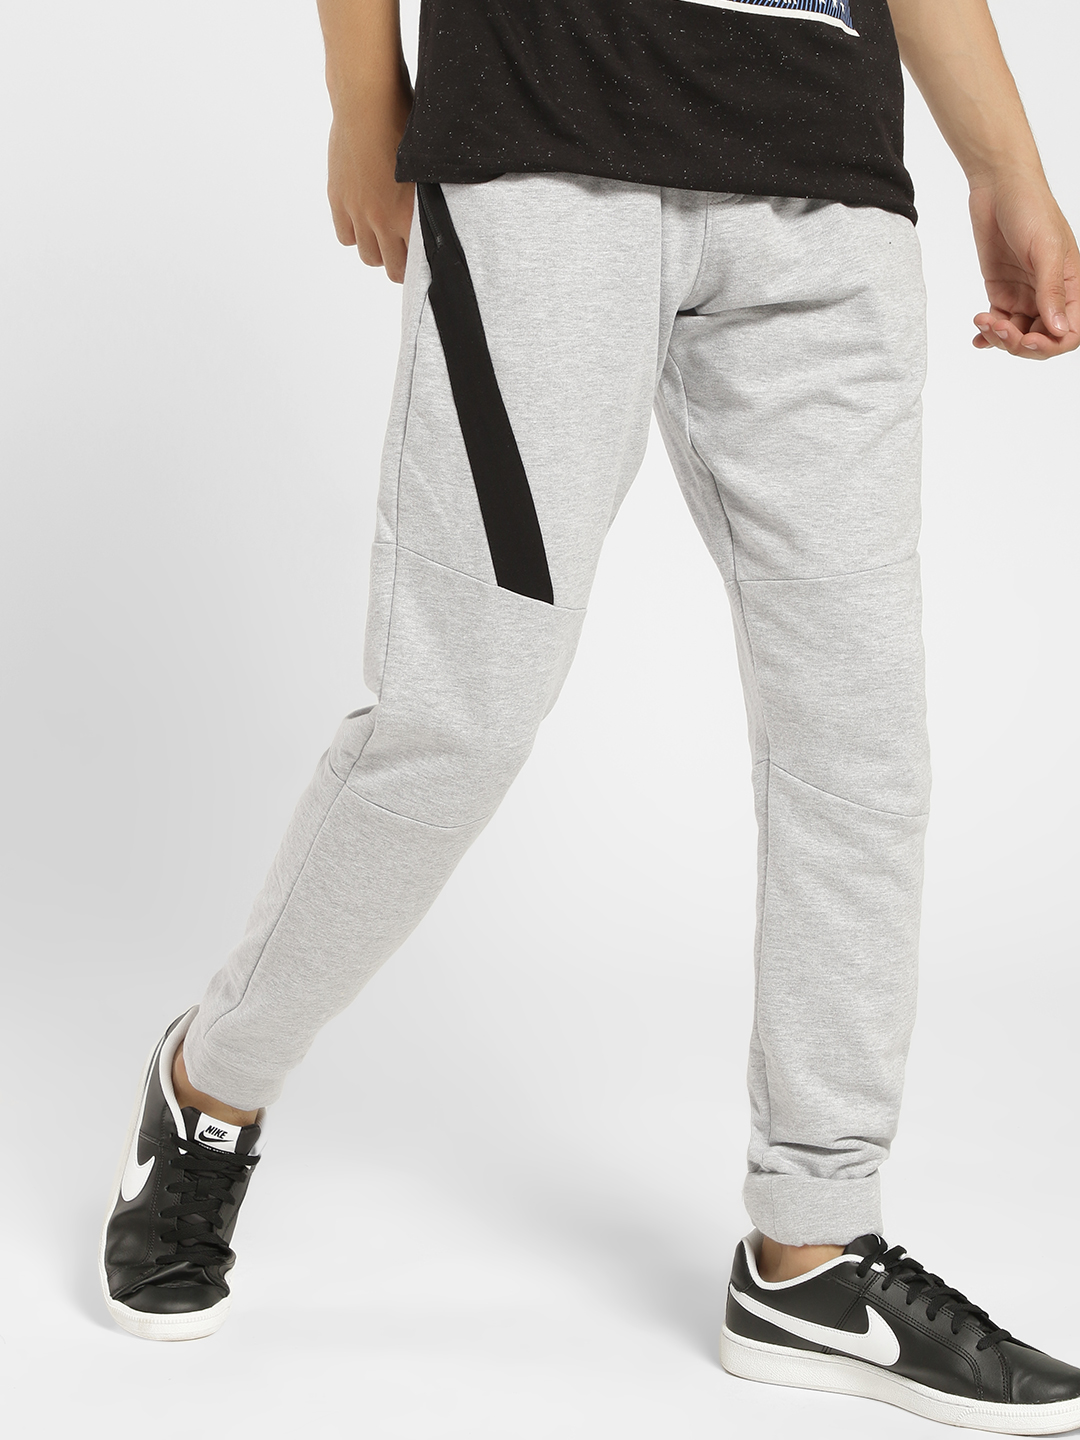 X.O.Y.O Grey Contrast Side Zipper Tape Panelled Joggers 1